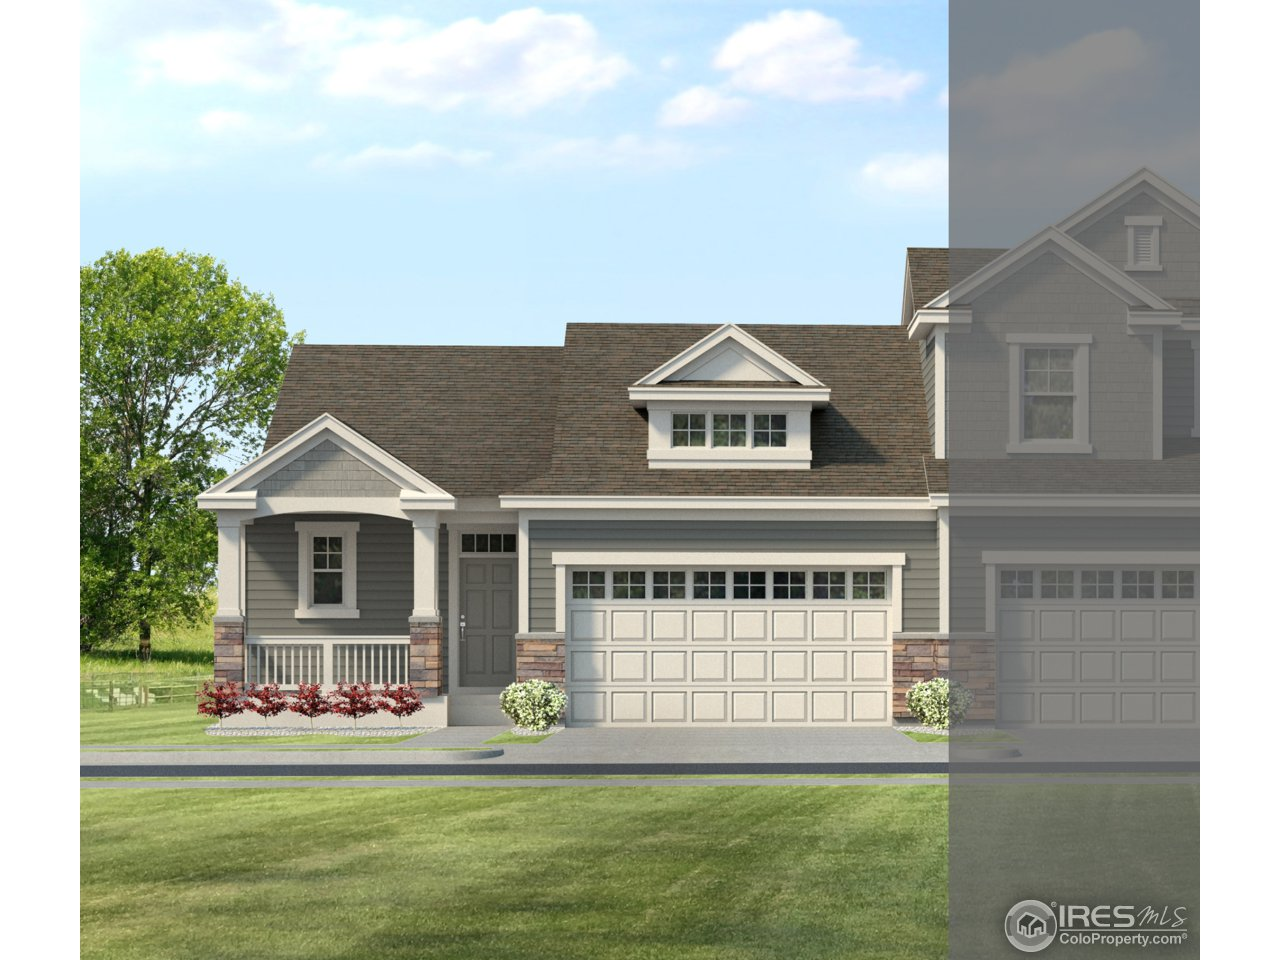 3501 18th St, Greeley CO 80634